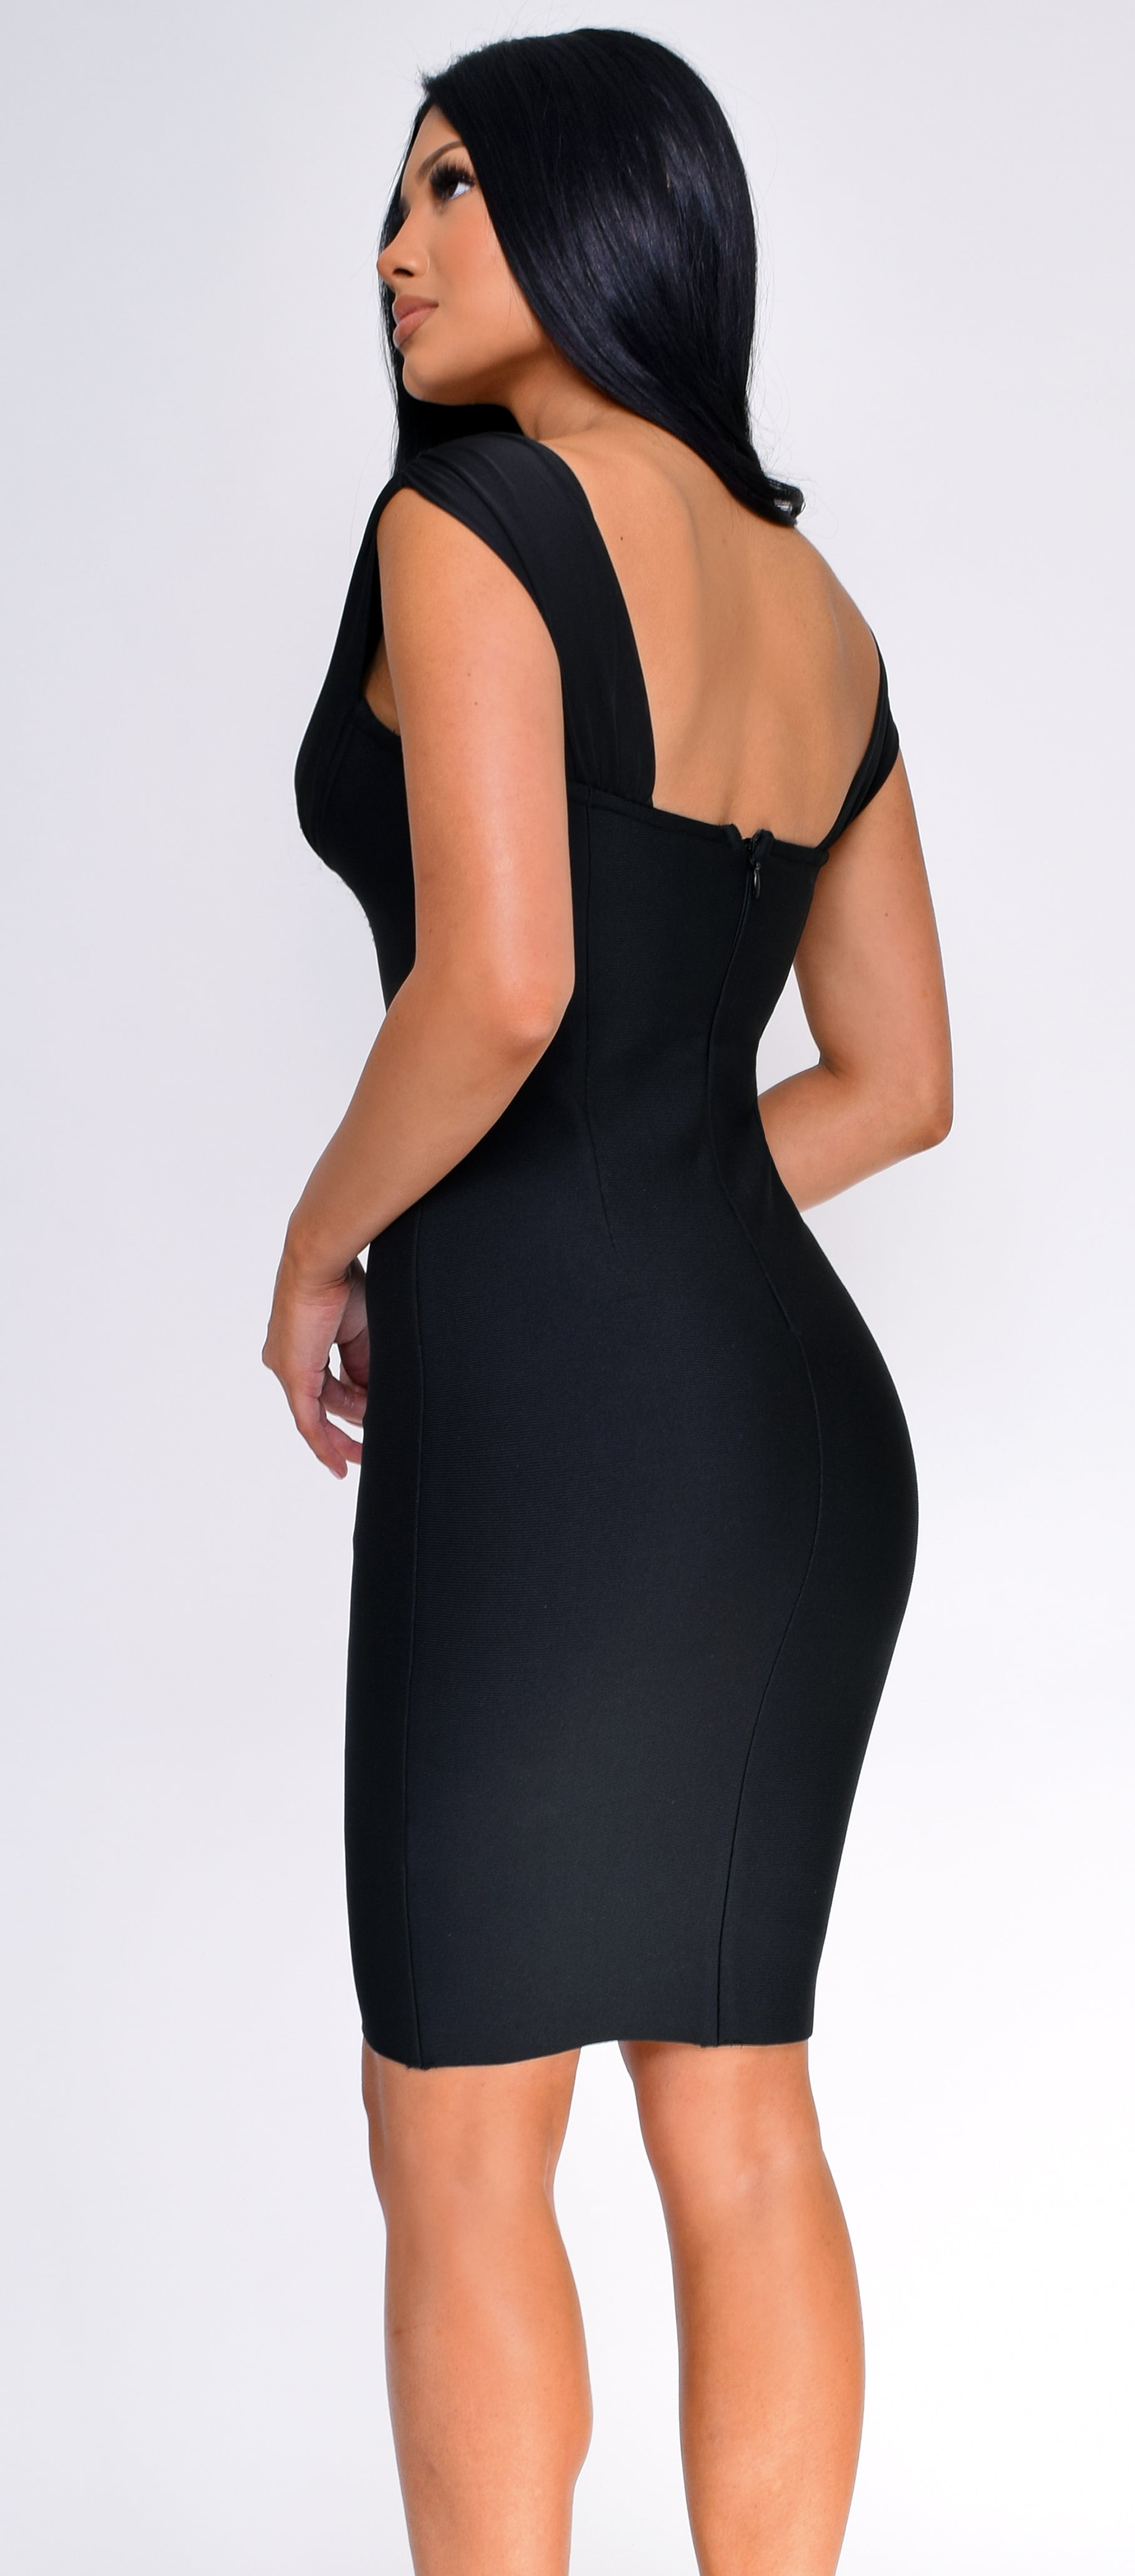 Violetta Black Bandage Dress